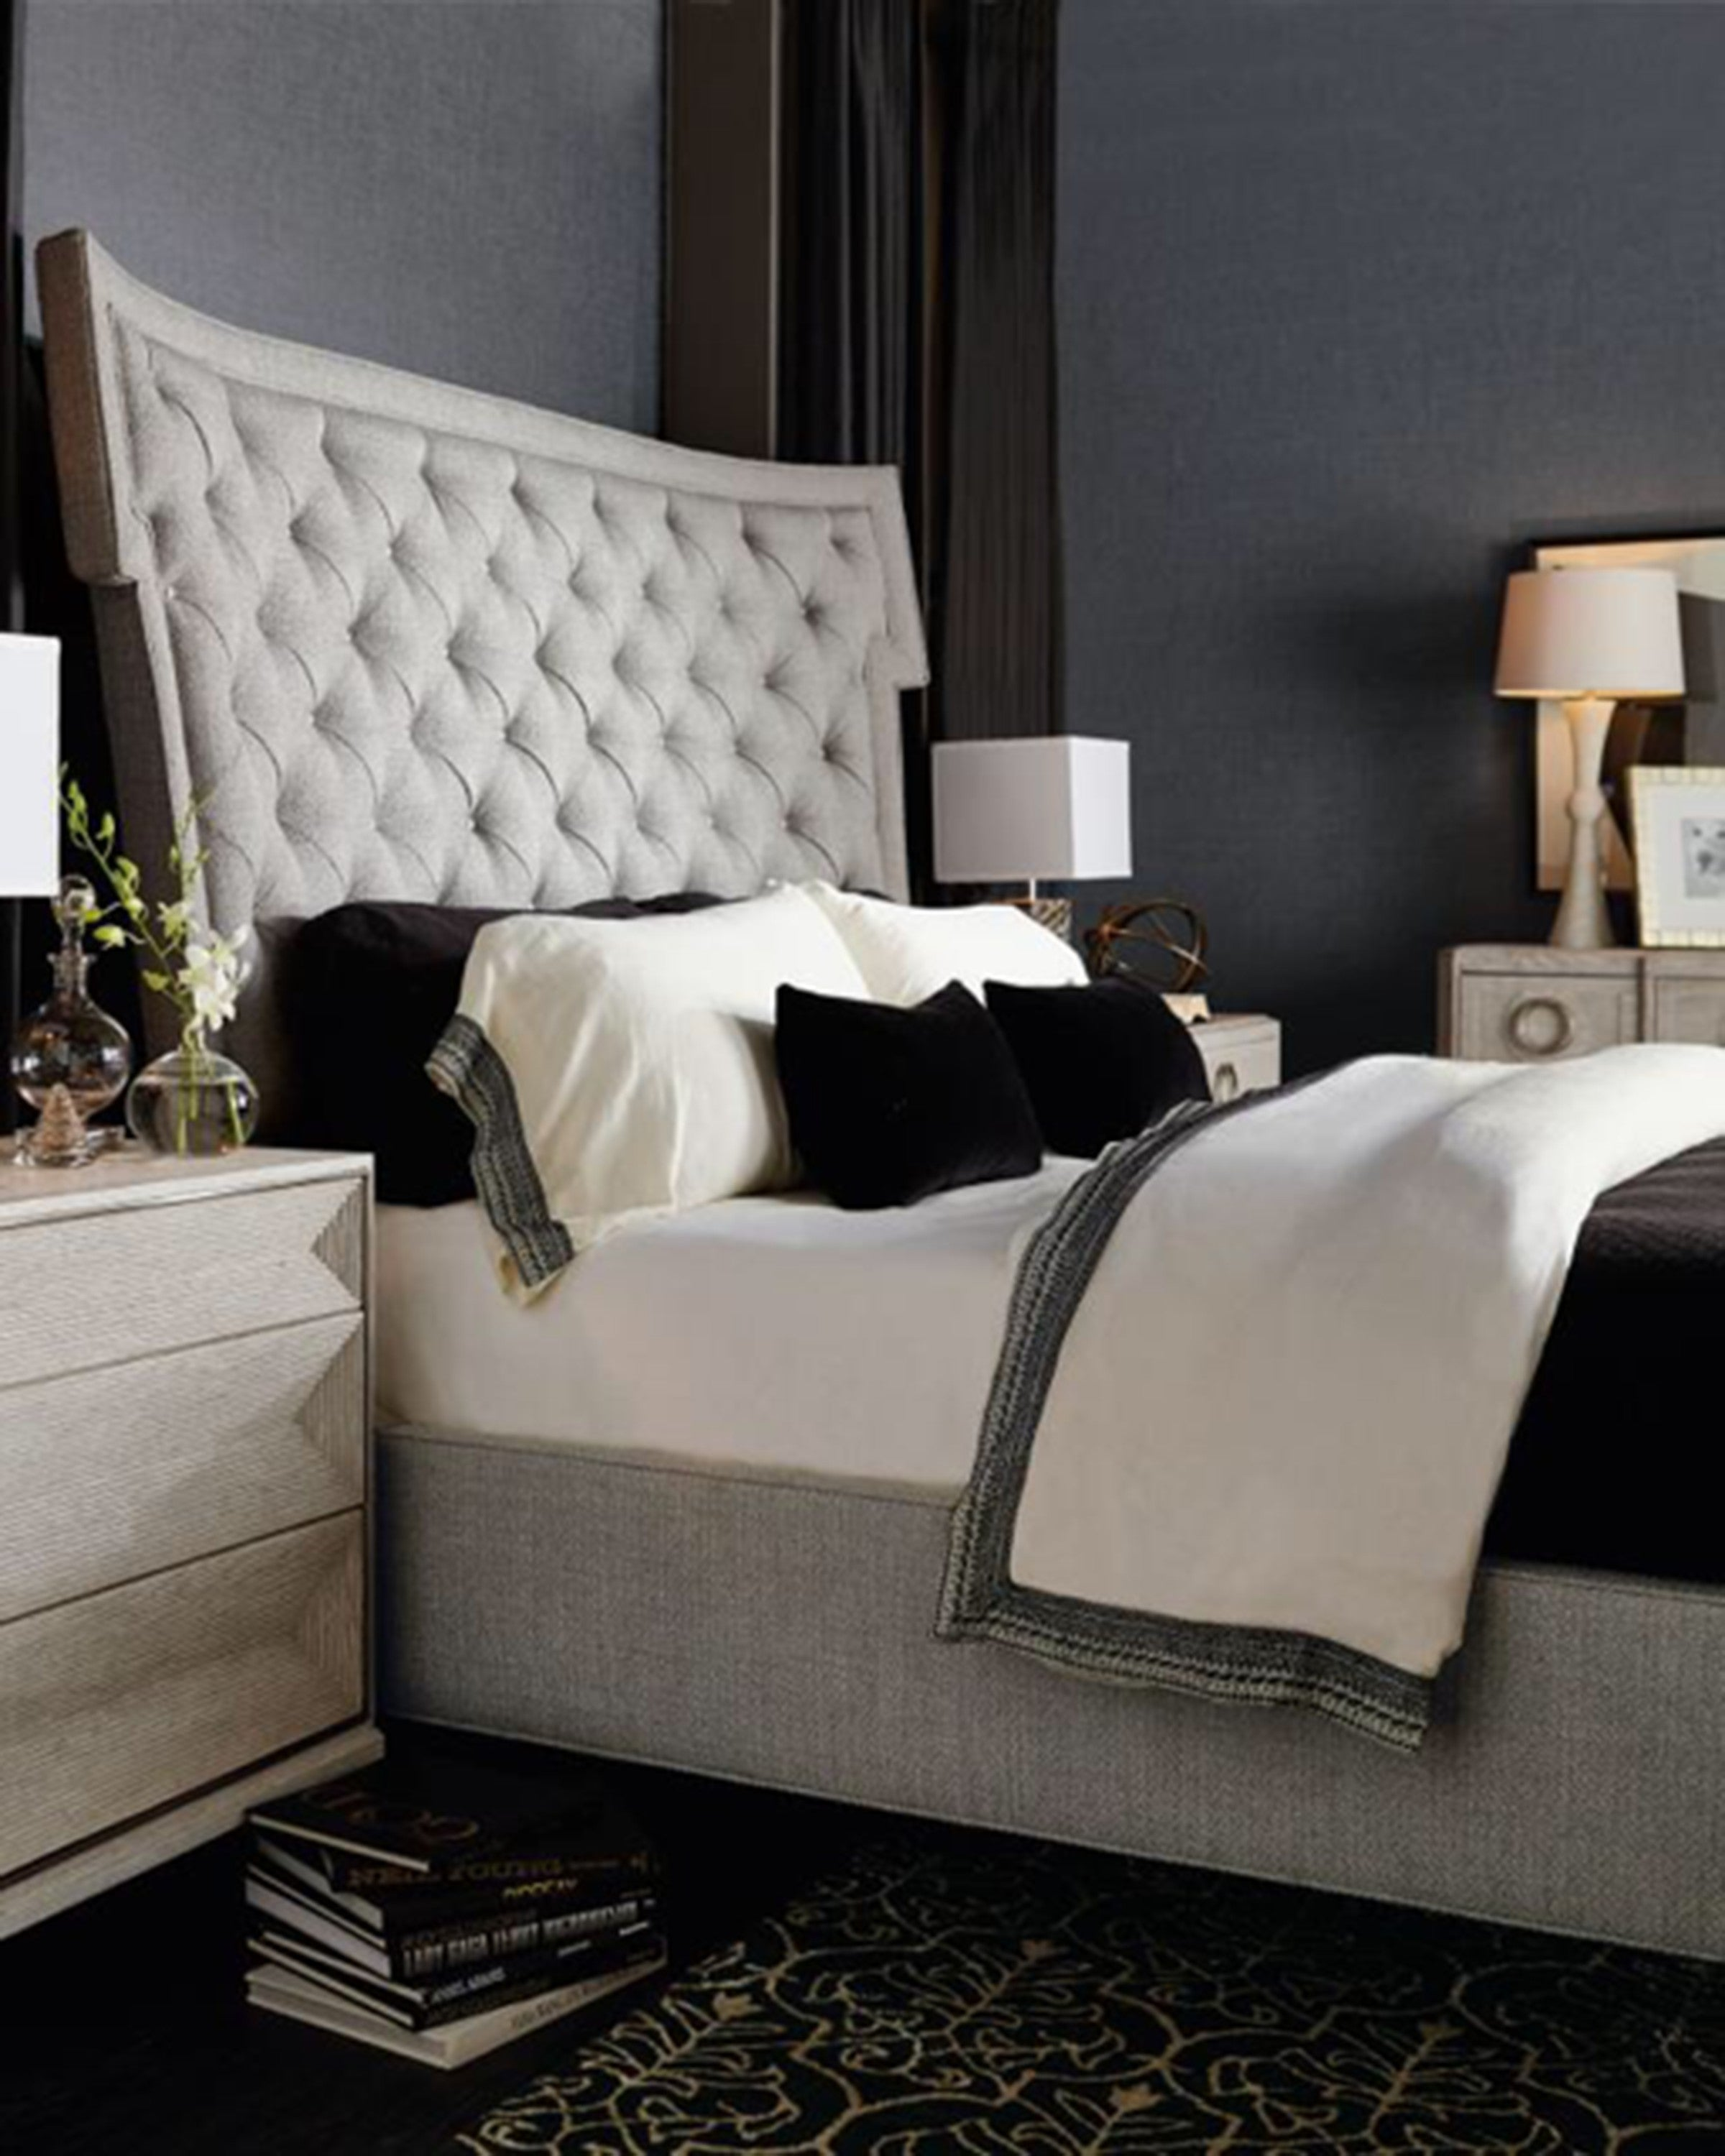 Luxury stylish bed sets with brown pillows | Angie Homes